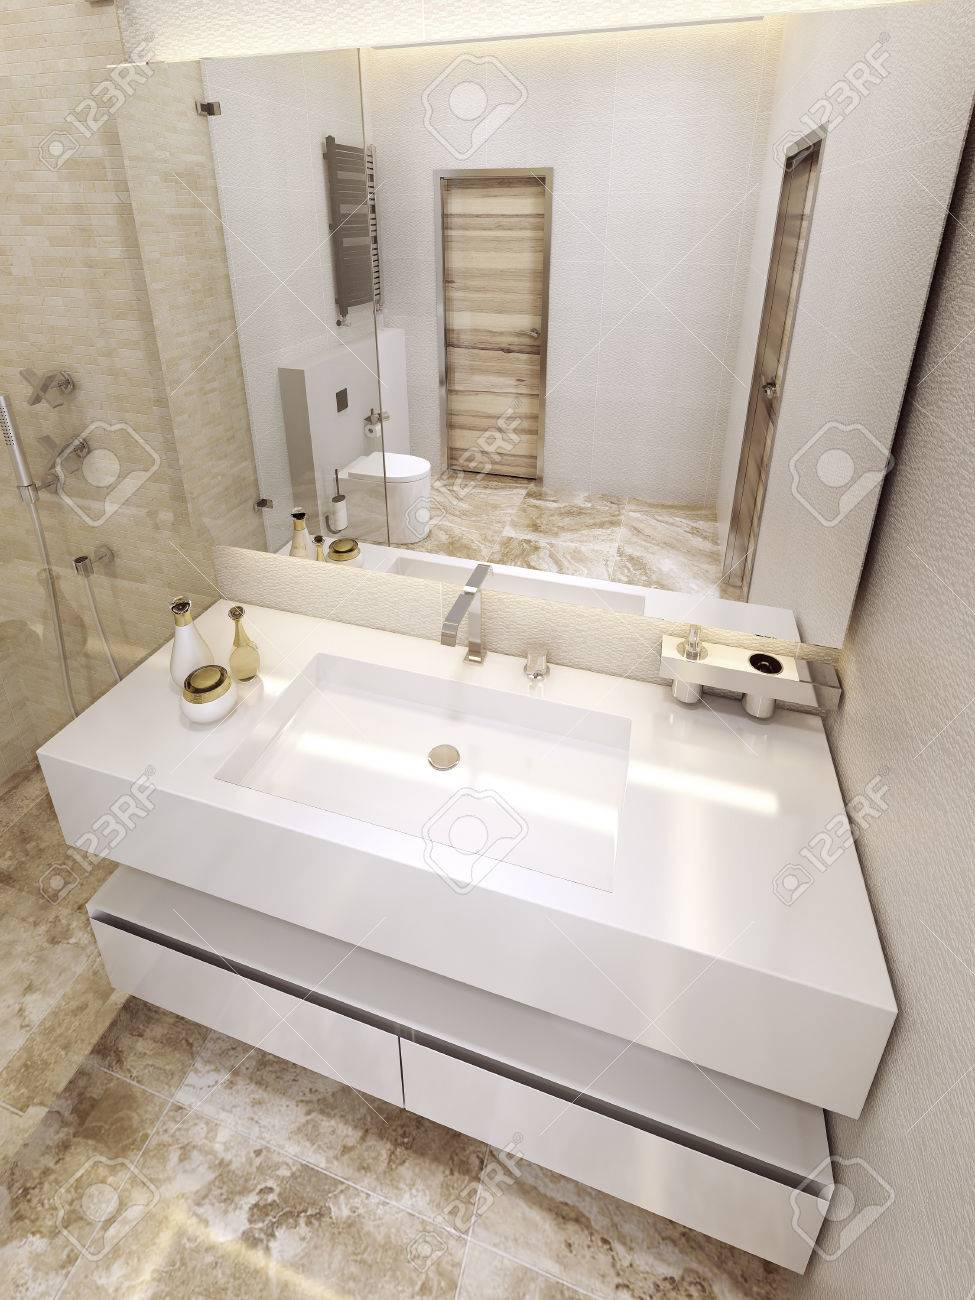 Modern Bathroom In 5 Star Hotel. Luxurious Design In White And ...